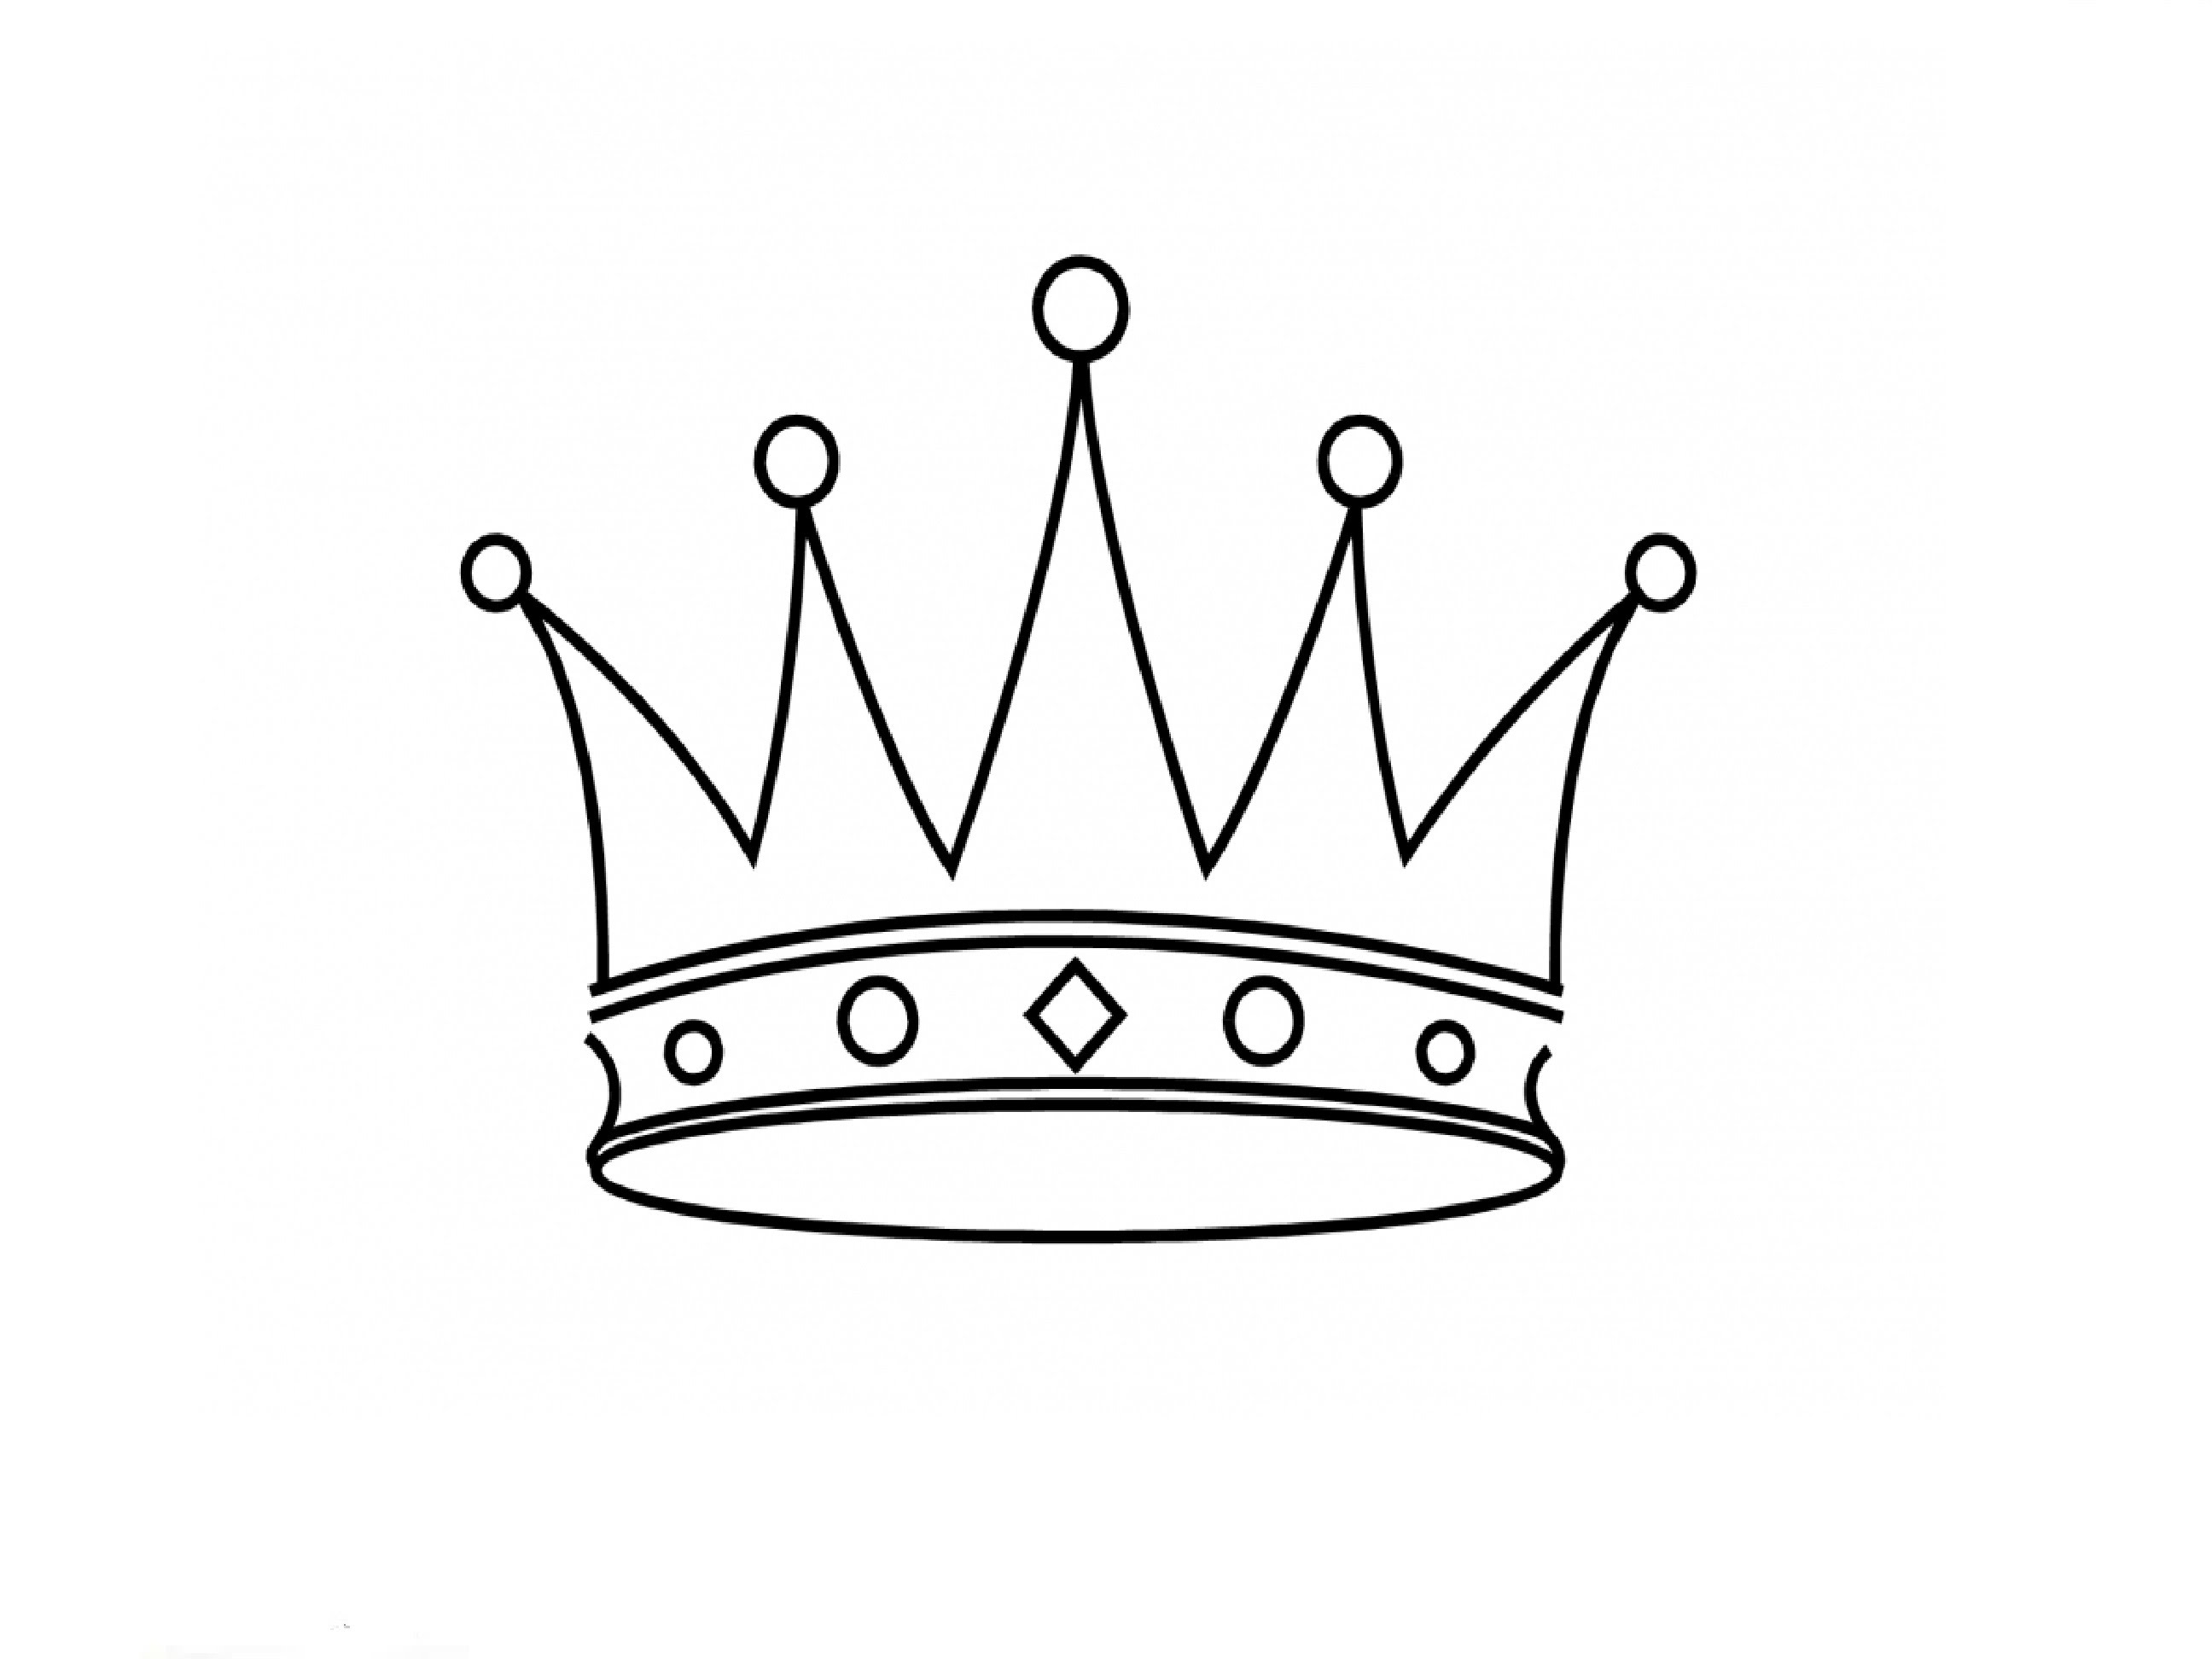 2592x1944 How To Draw Graffiti Crown Graffiti Crown Drawings How To Draw